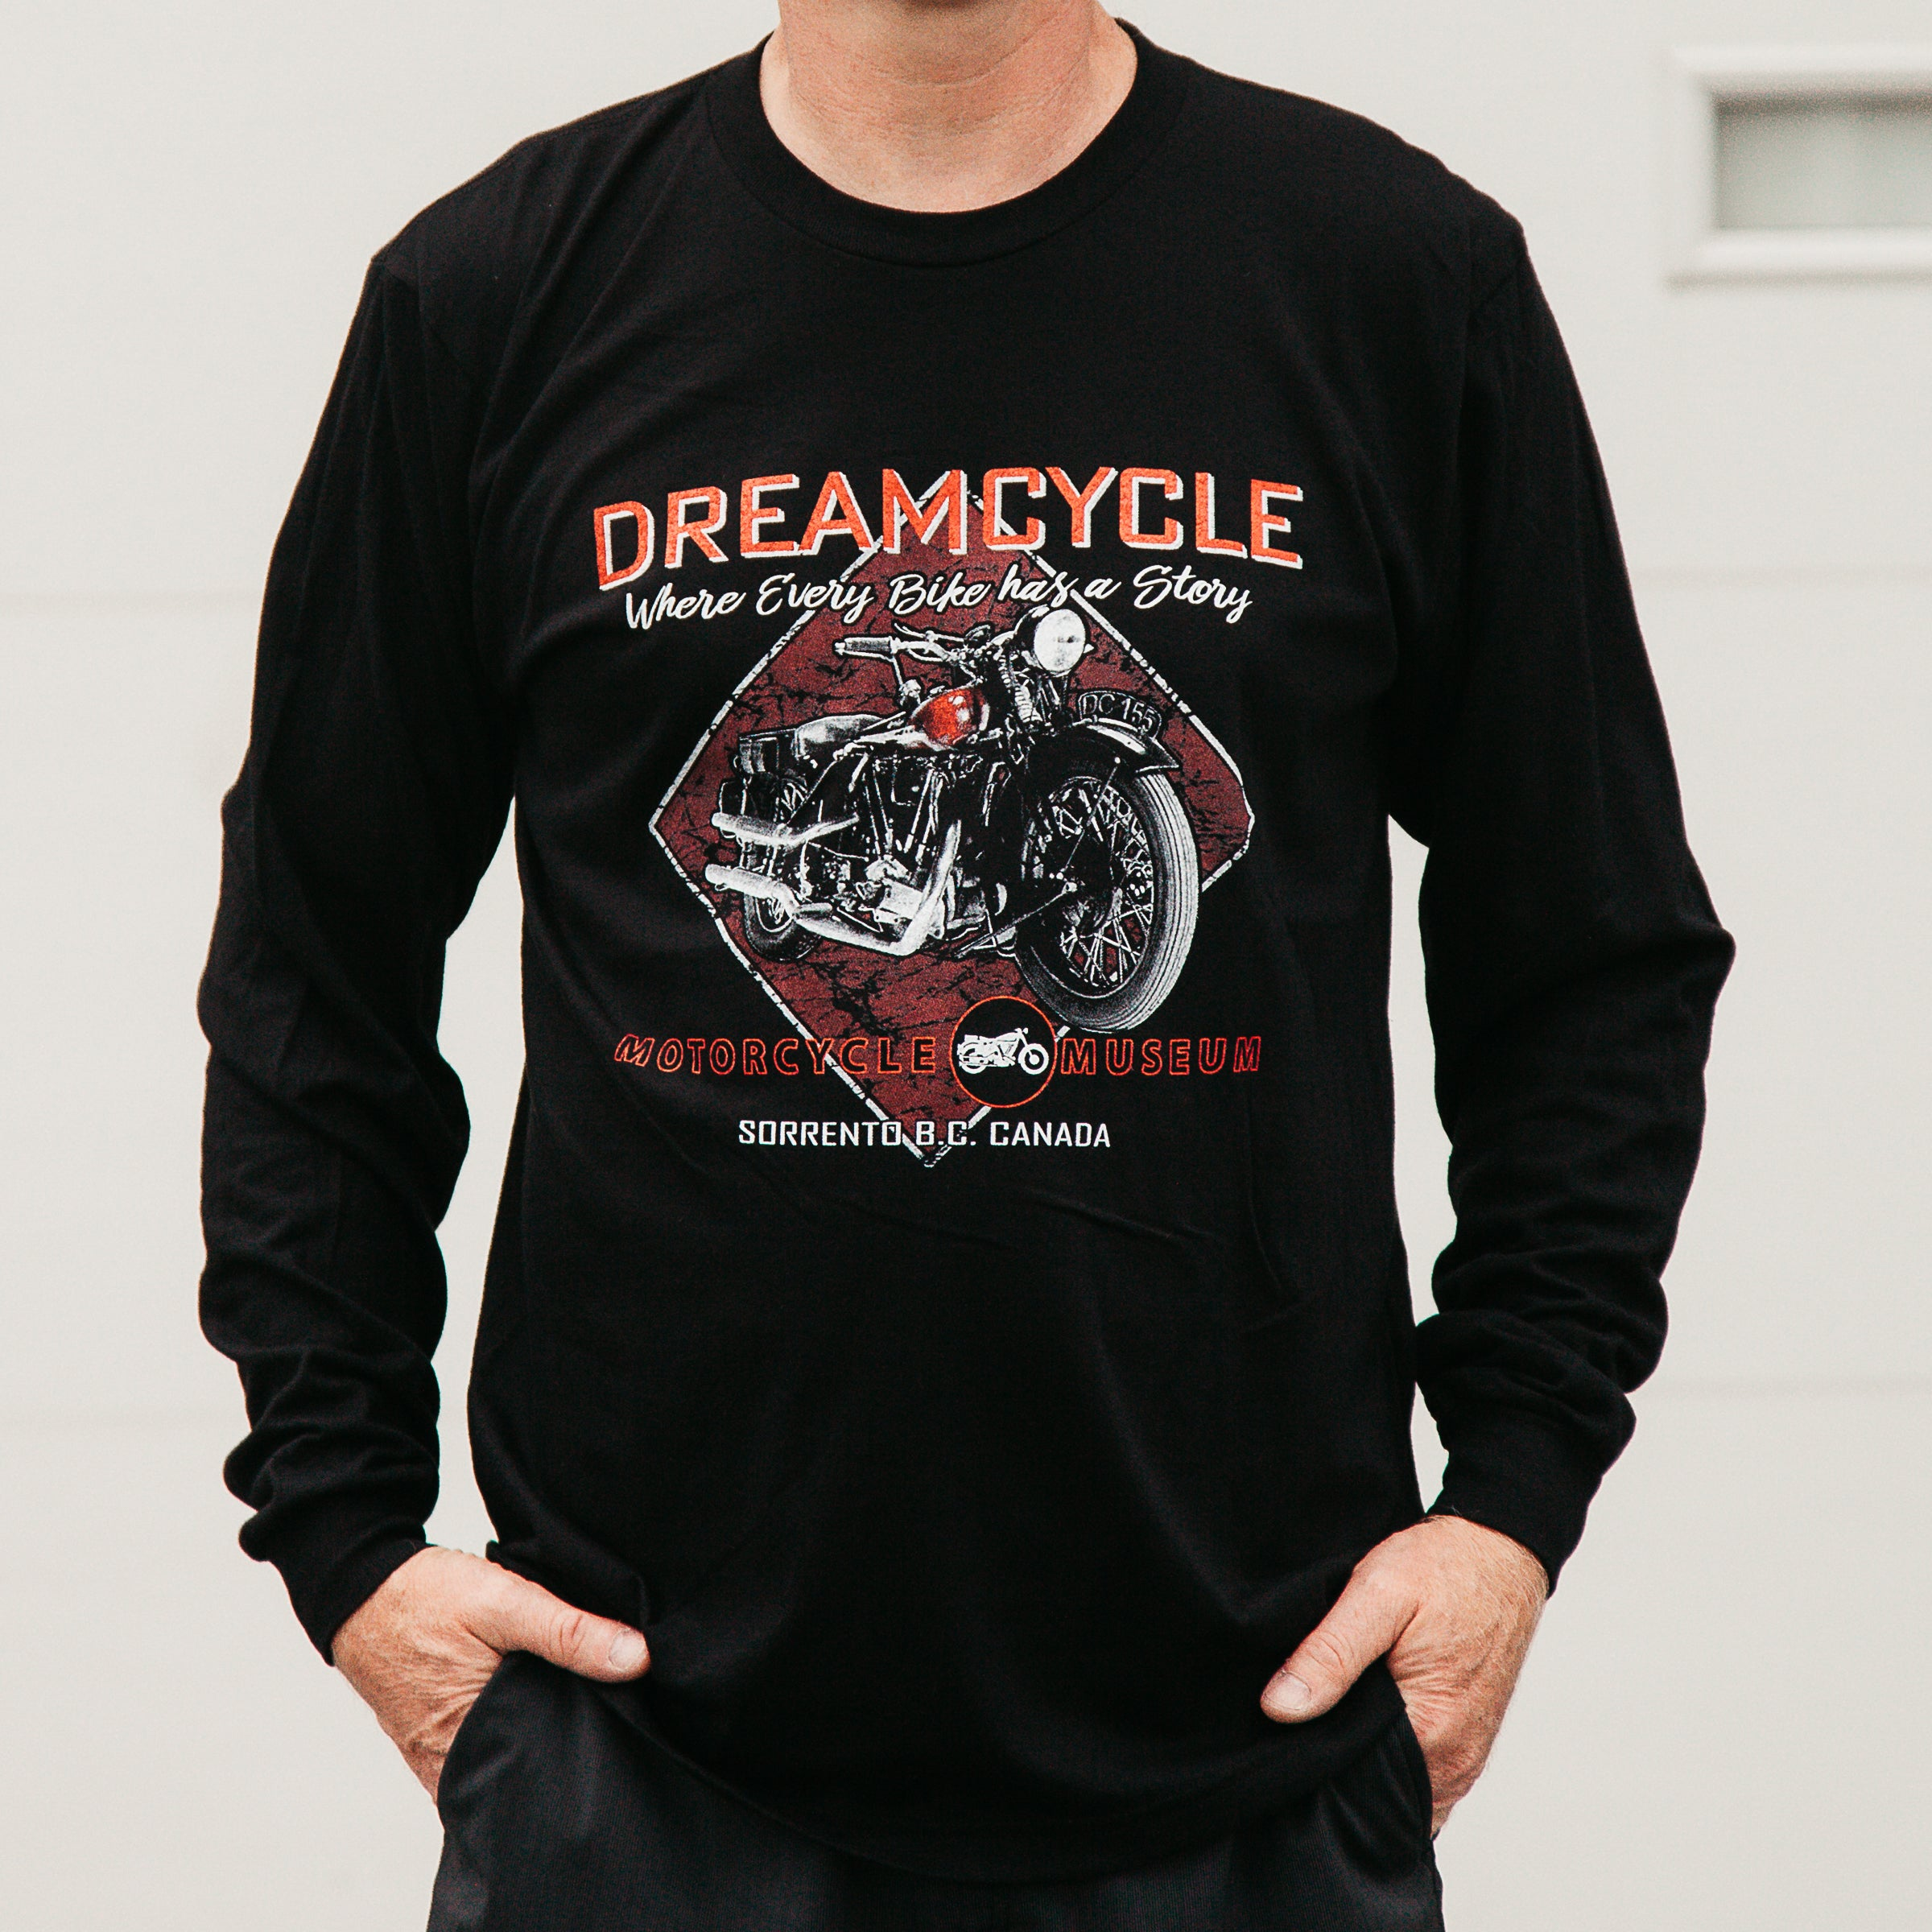 Dreamcycle Motorcycle Museum |  Closeup Longsleve dreamcycle shirt on model in lifestle setting.